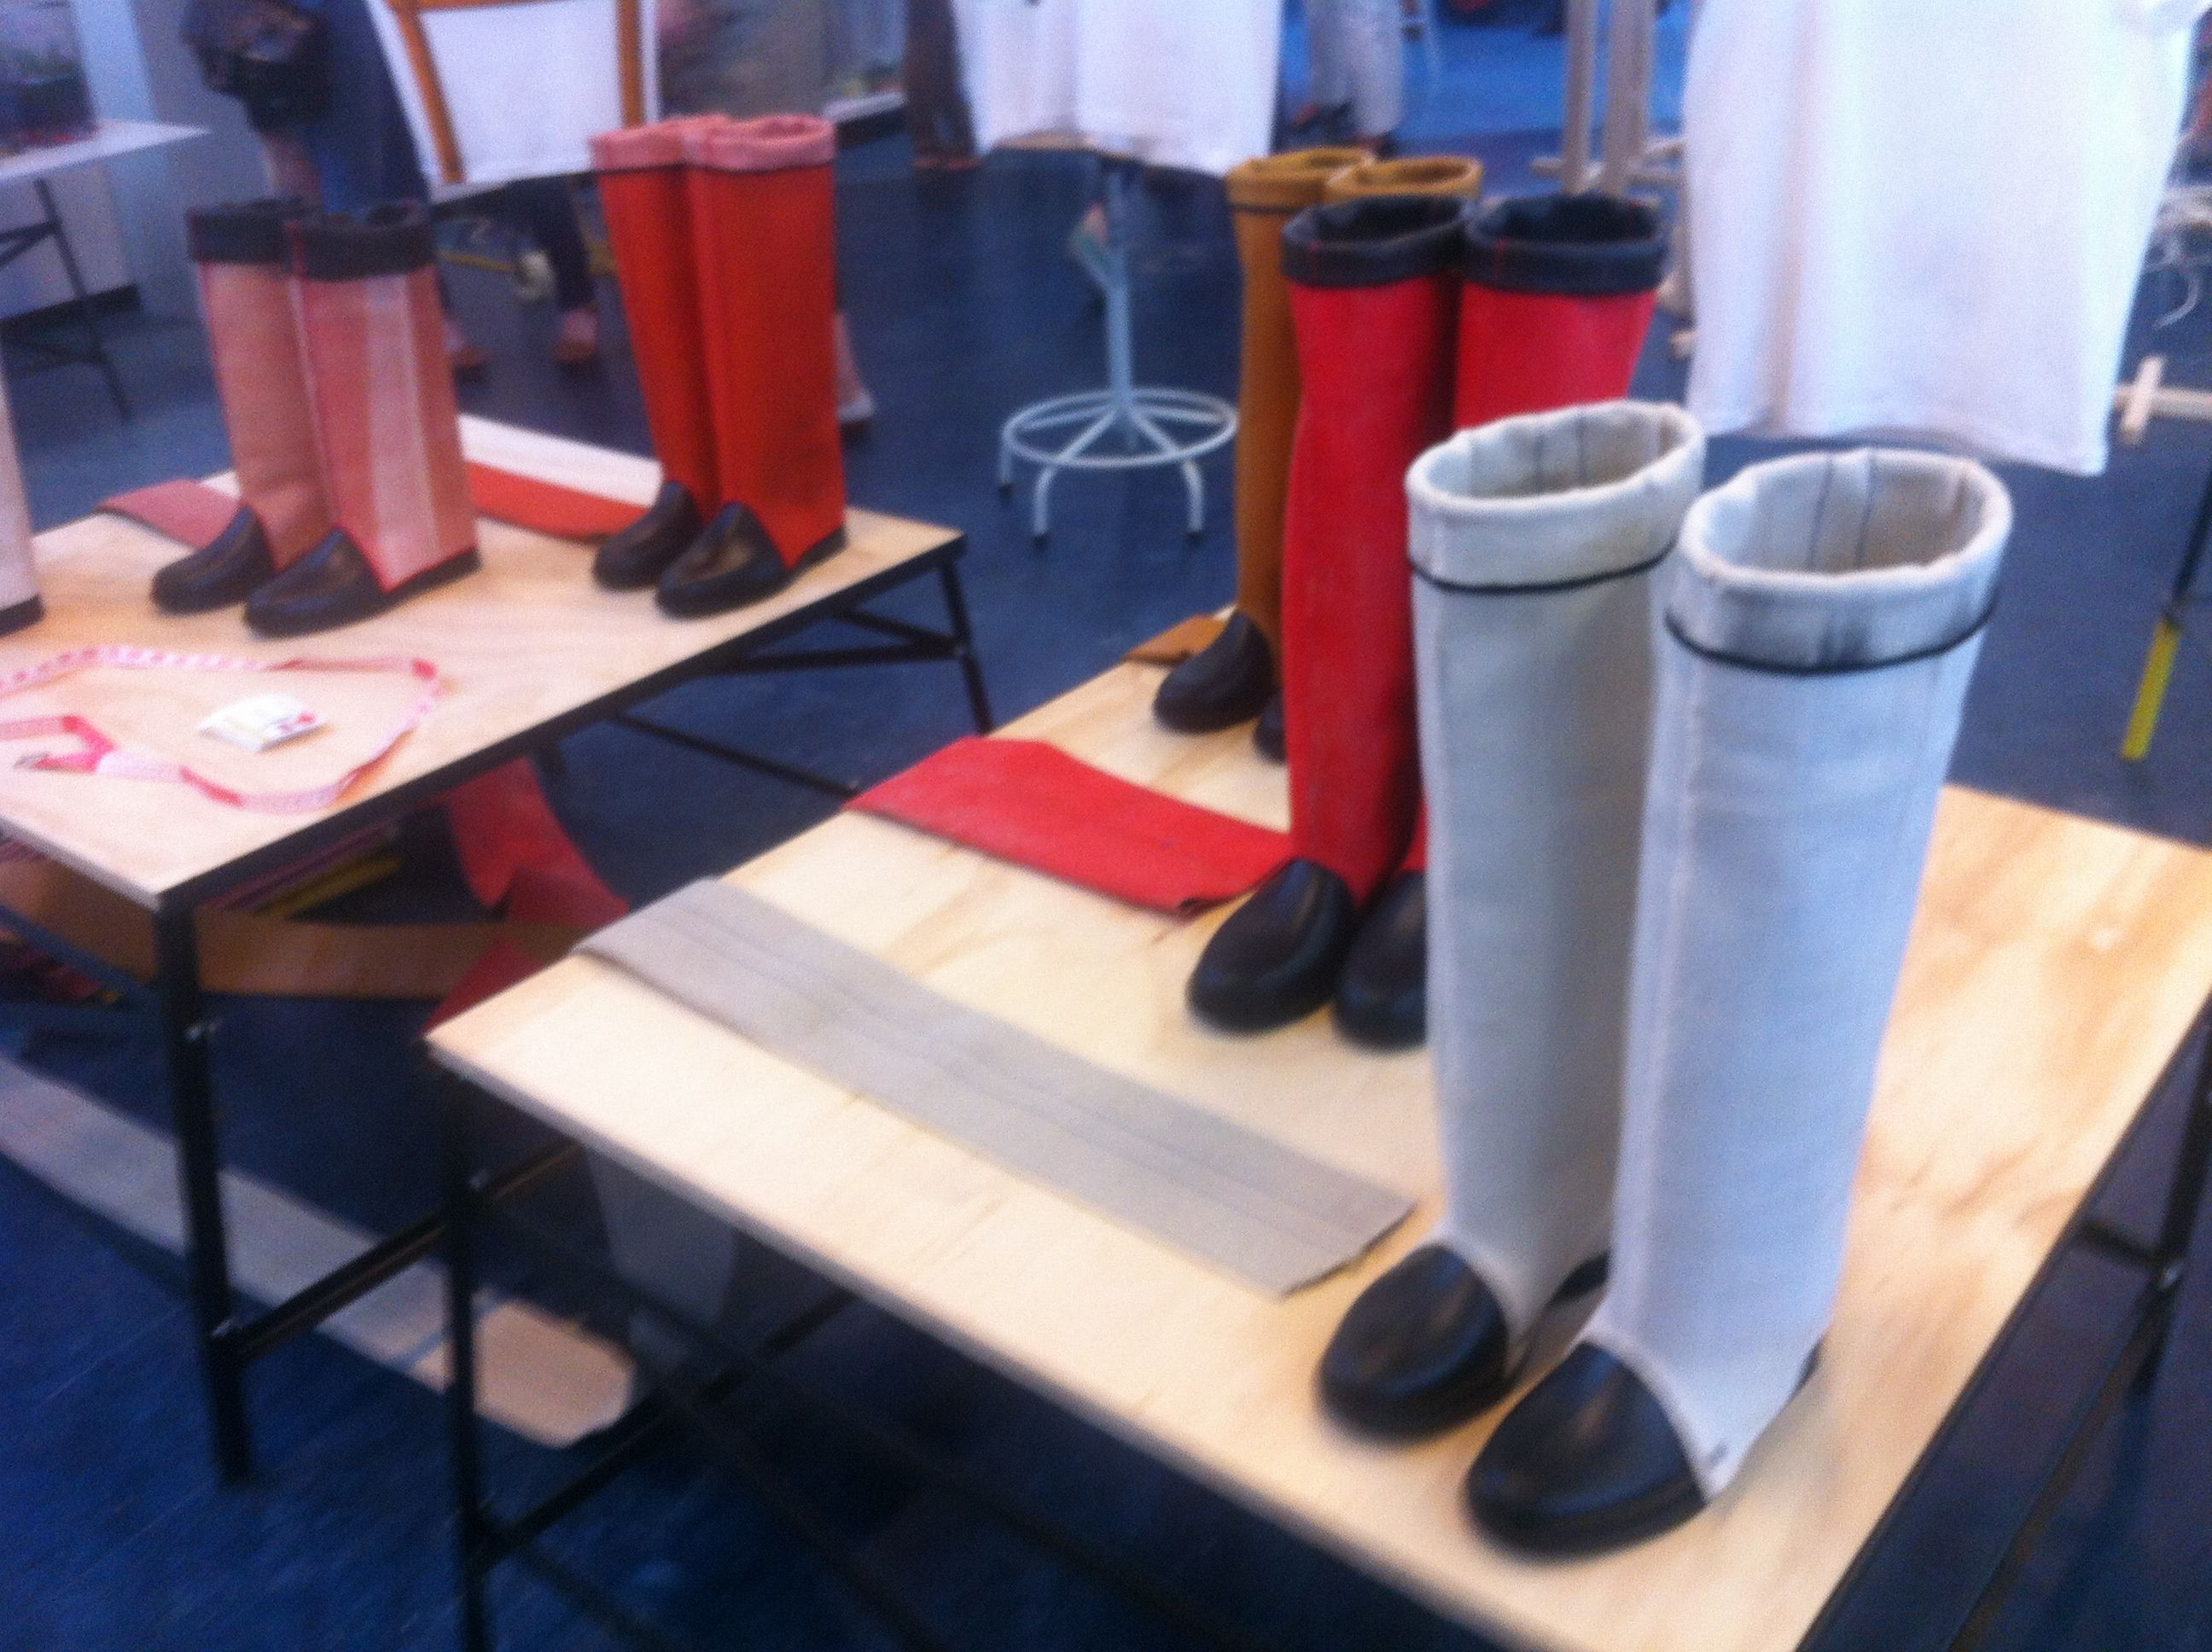 Fire hose boots by Doriankoelmans.com